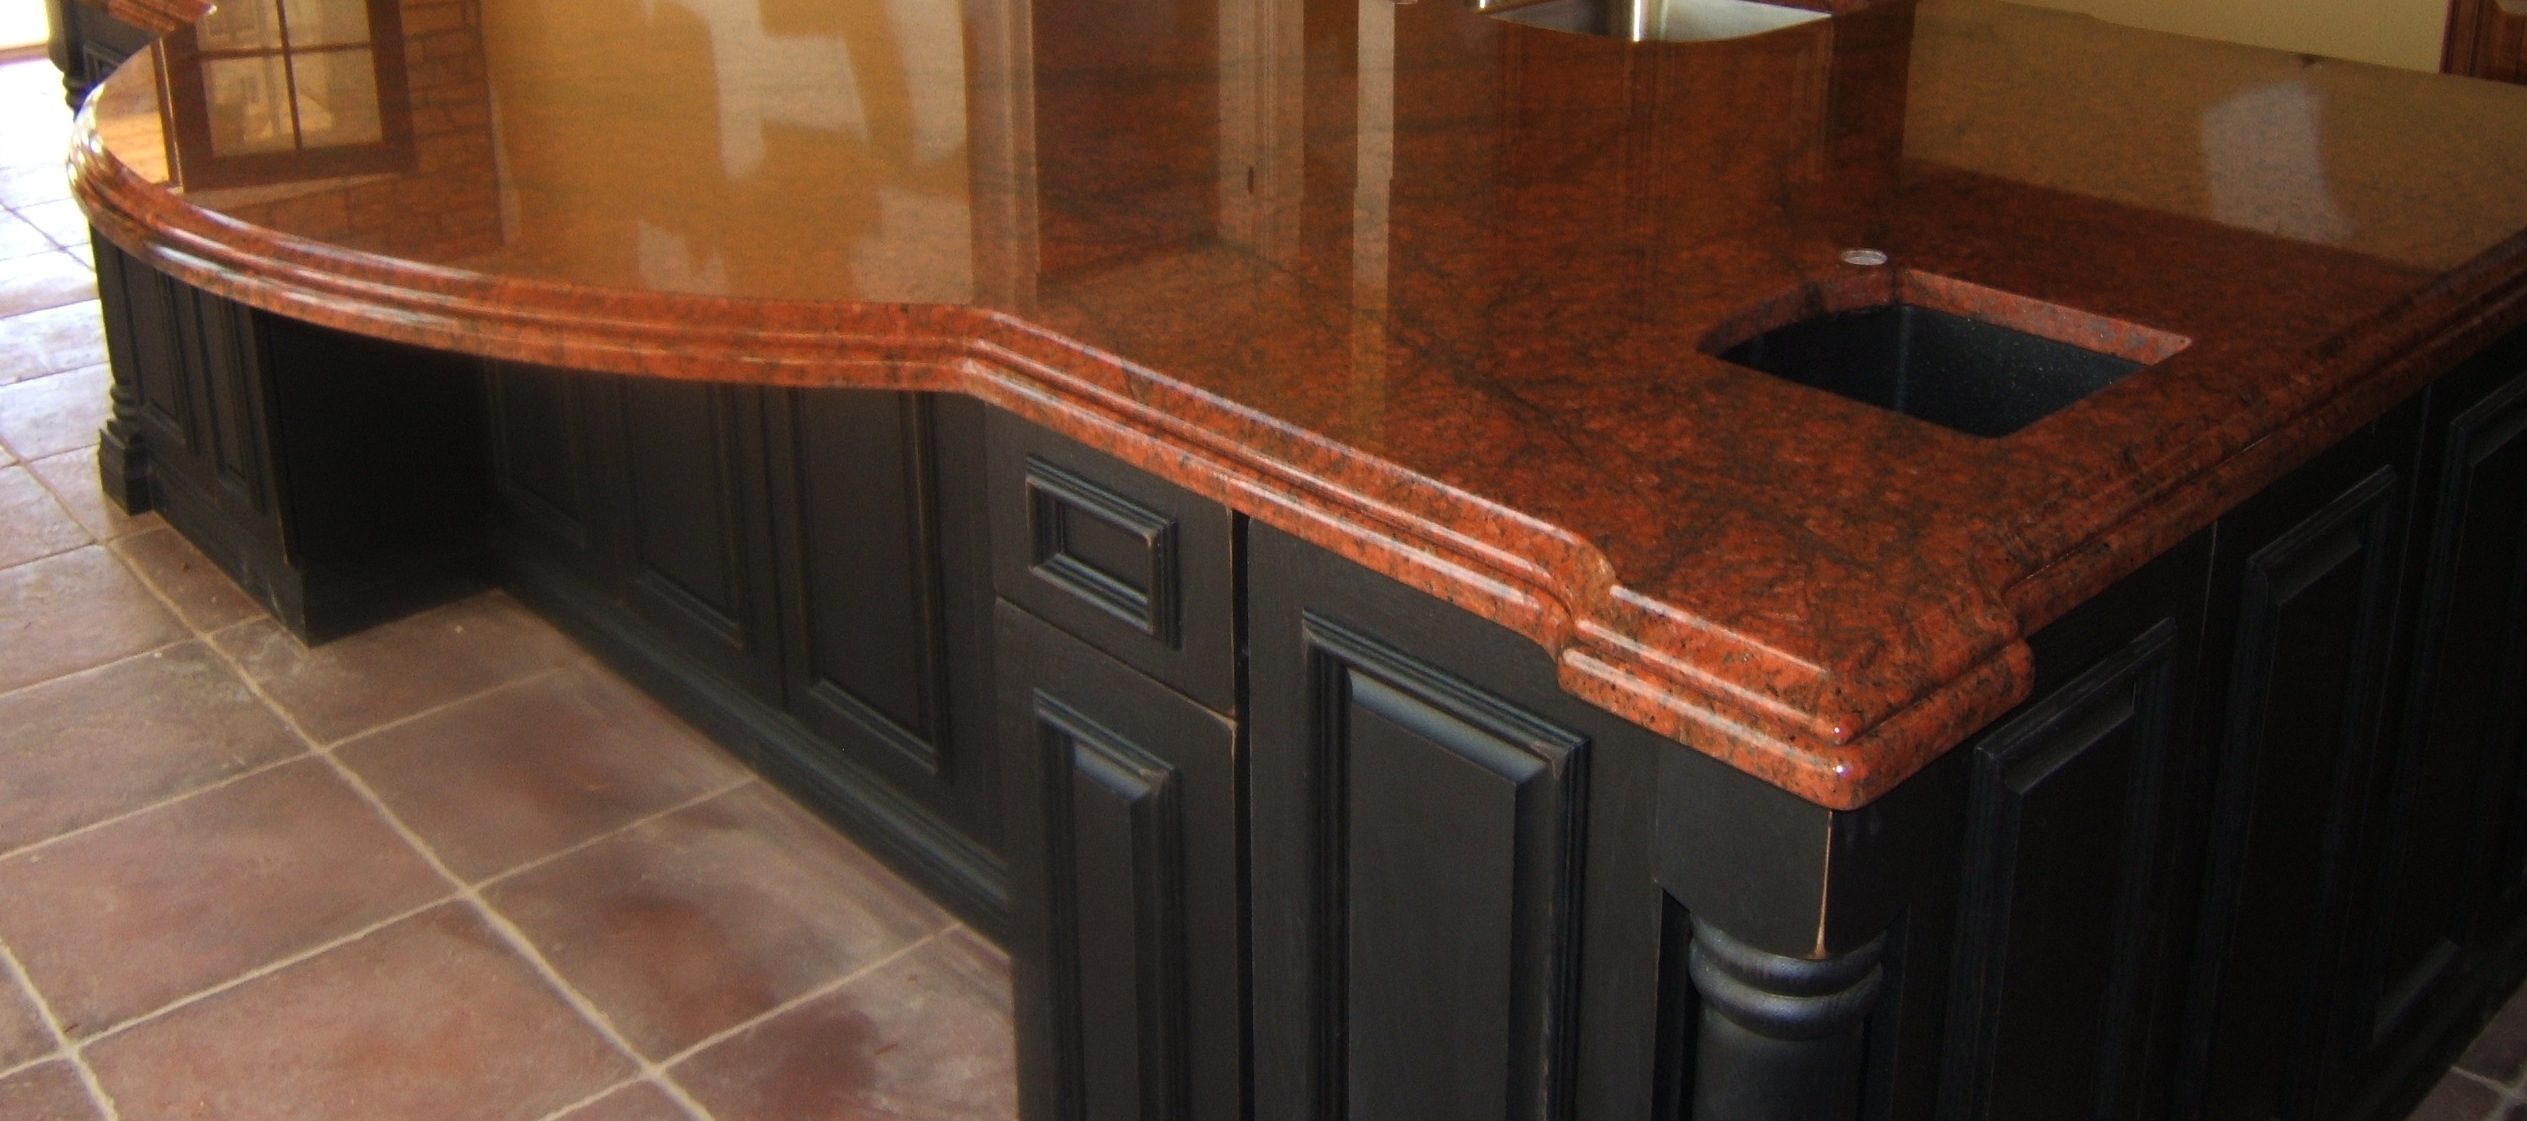 Red Dragon Granite Stone : Counter tops maryland kitchen counters custom